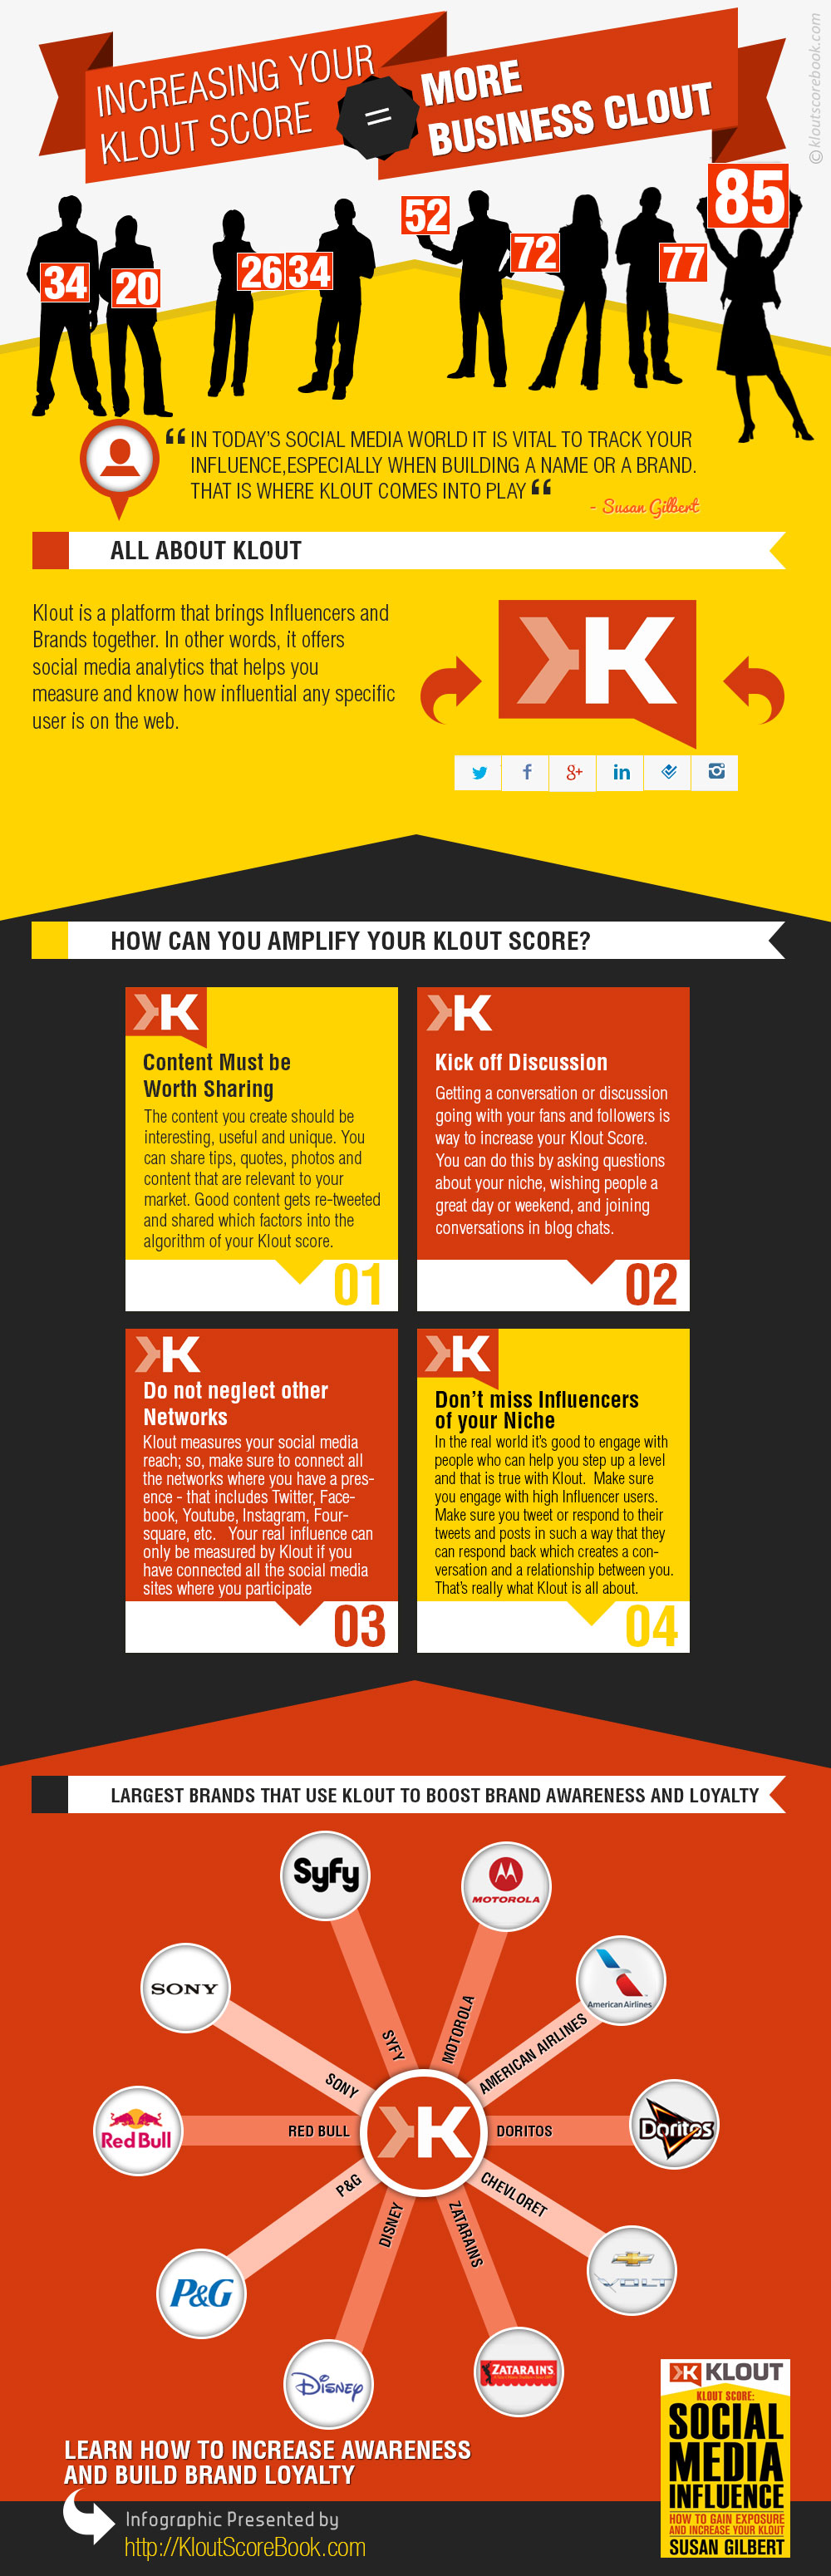 How to Increase Your Klout Score [Infographic] - JohnEEngle.com